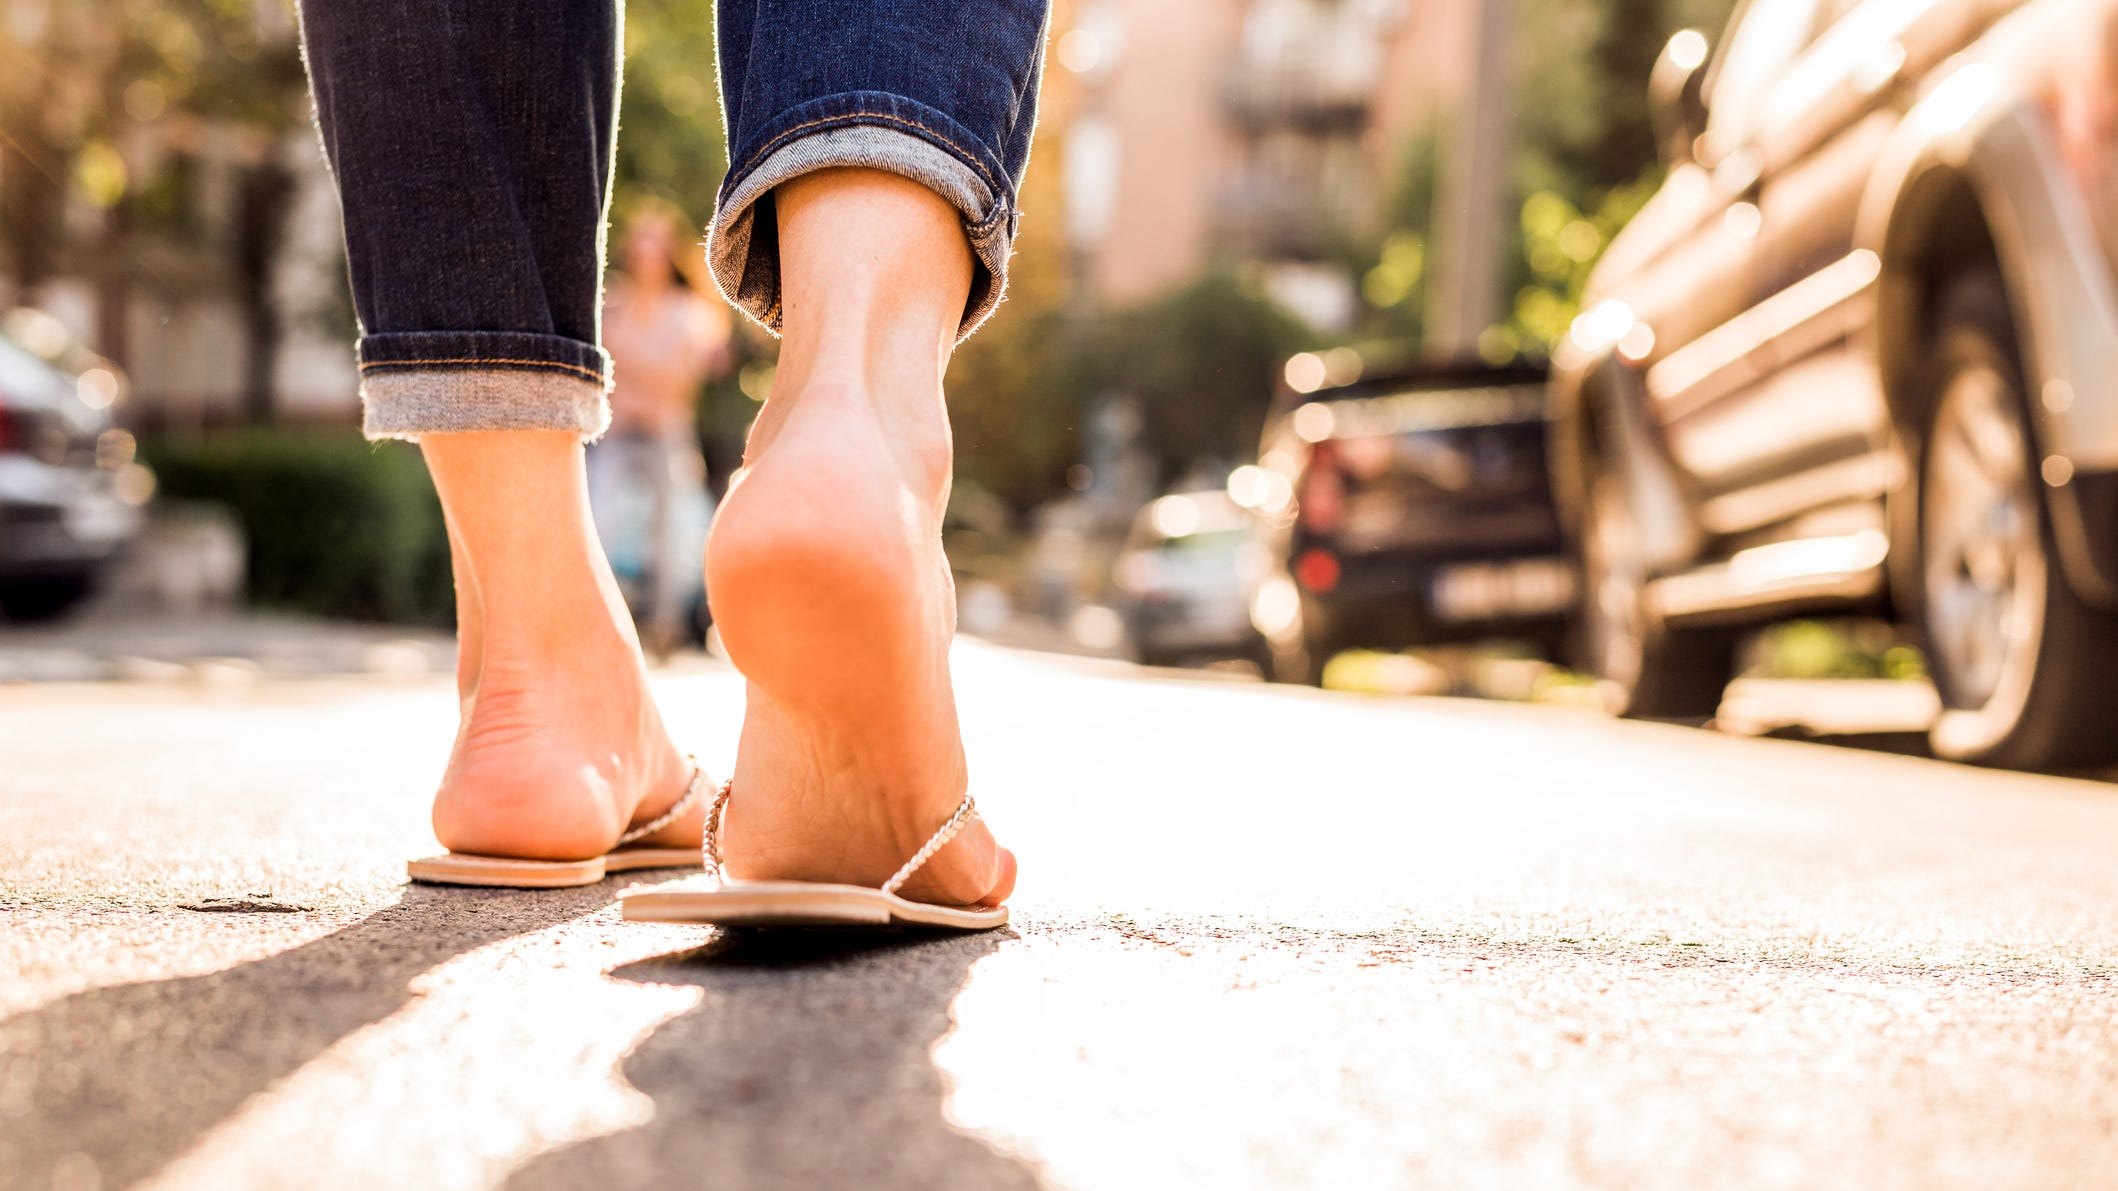 For safety's sake, don't wear flip-flops walking around unfamiliar city streets.